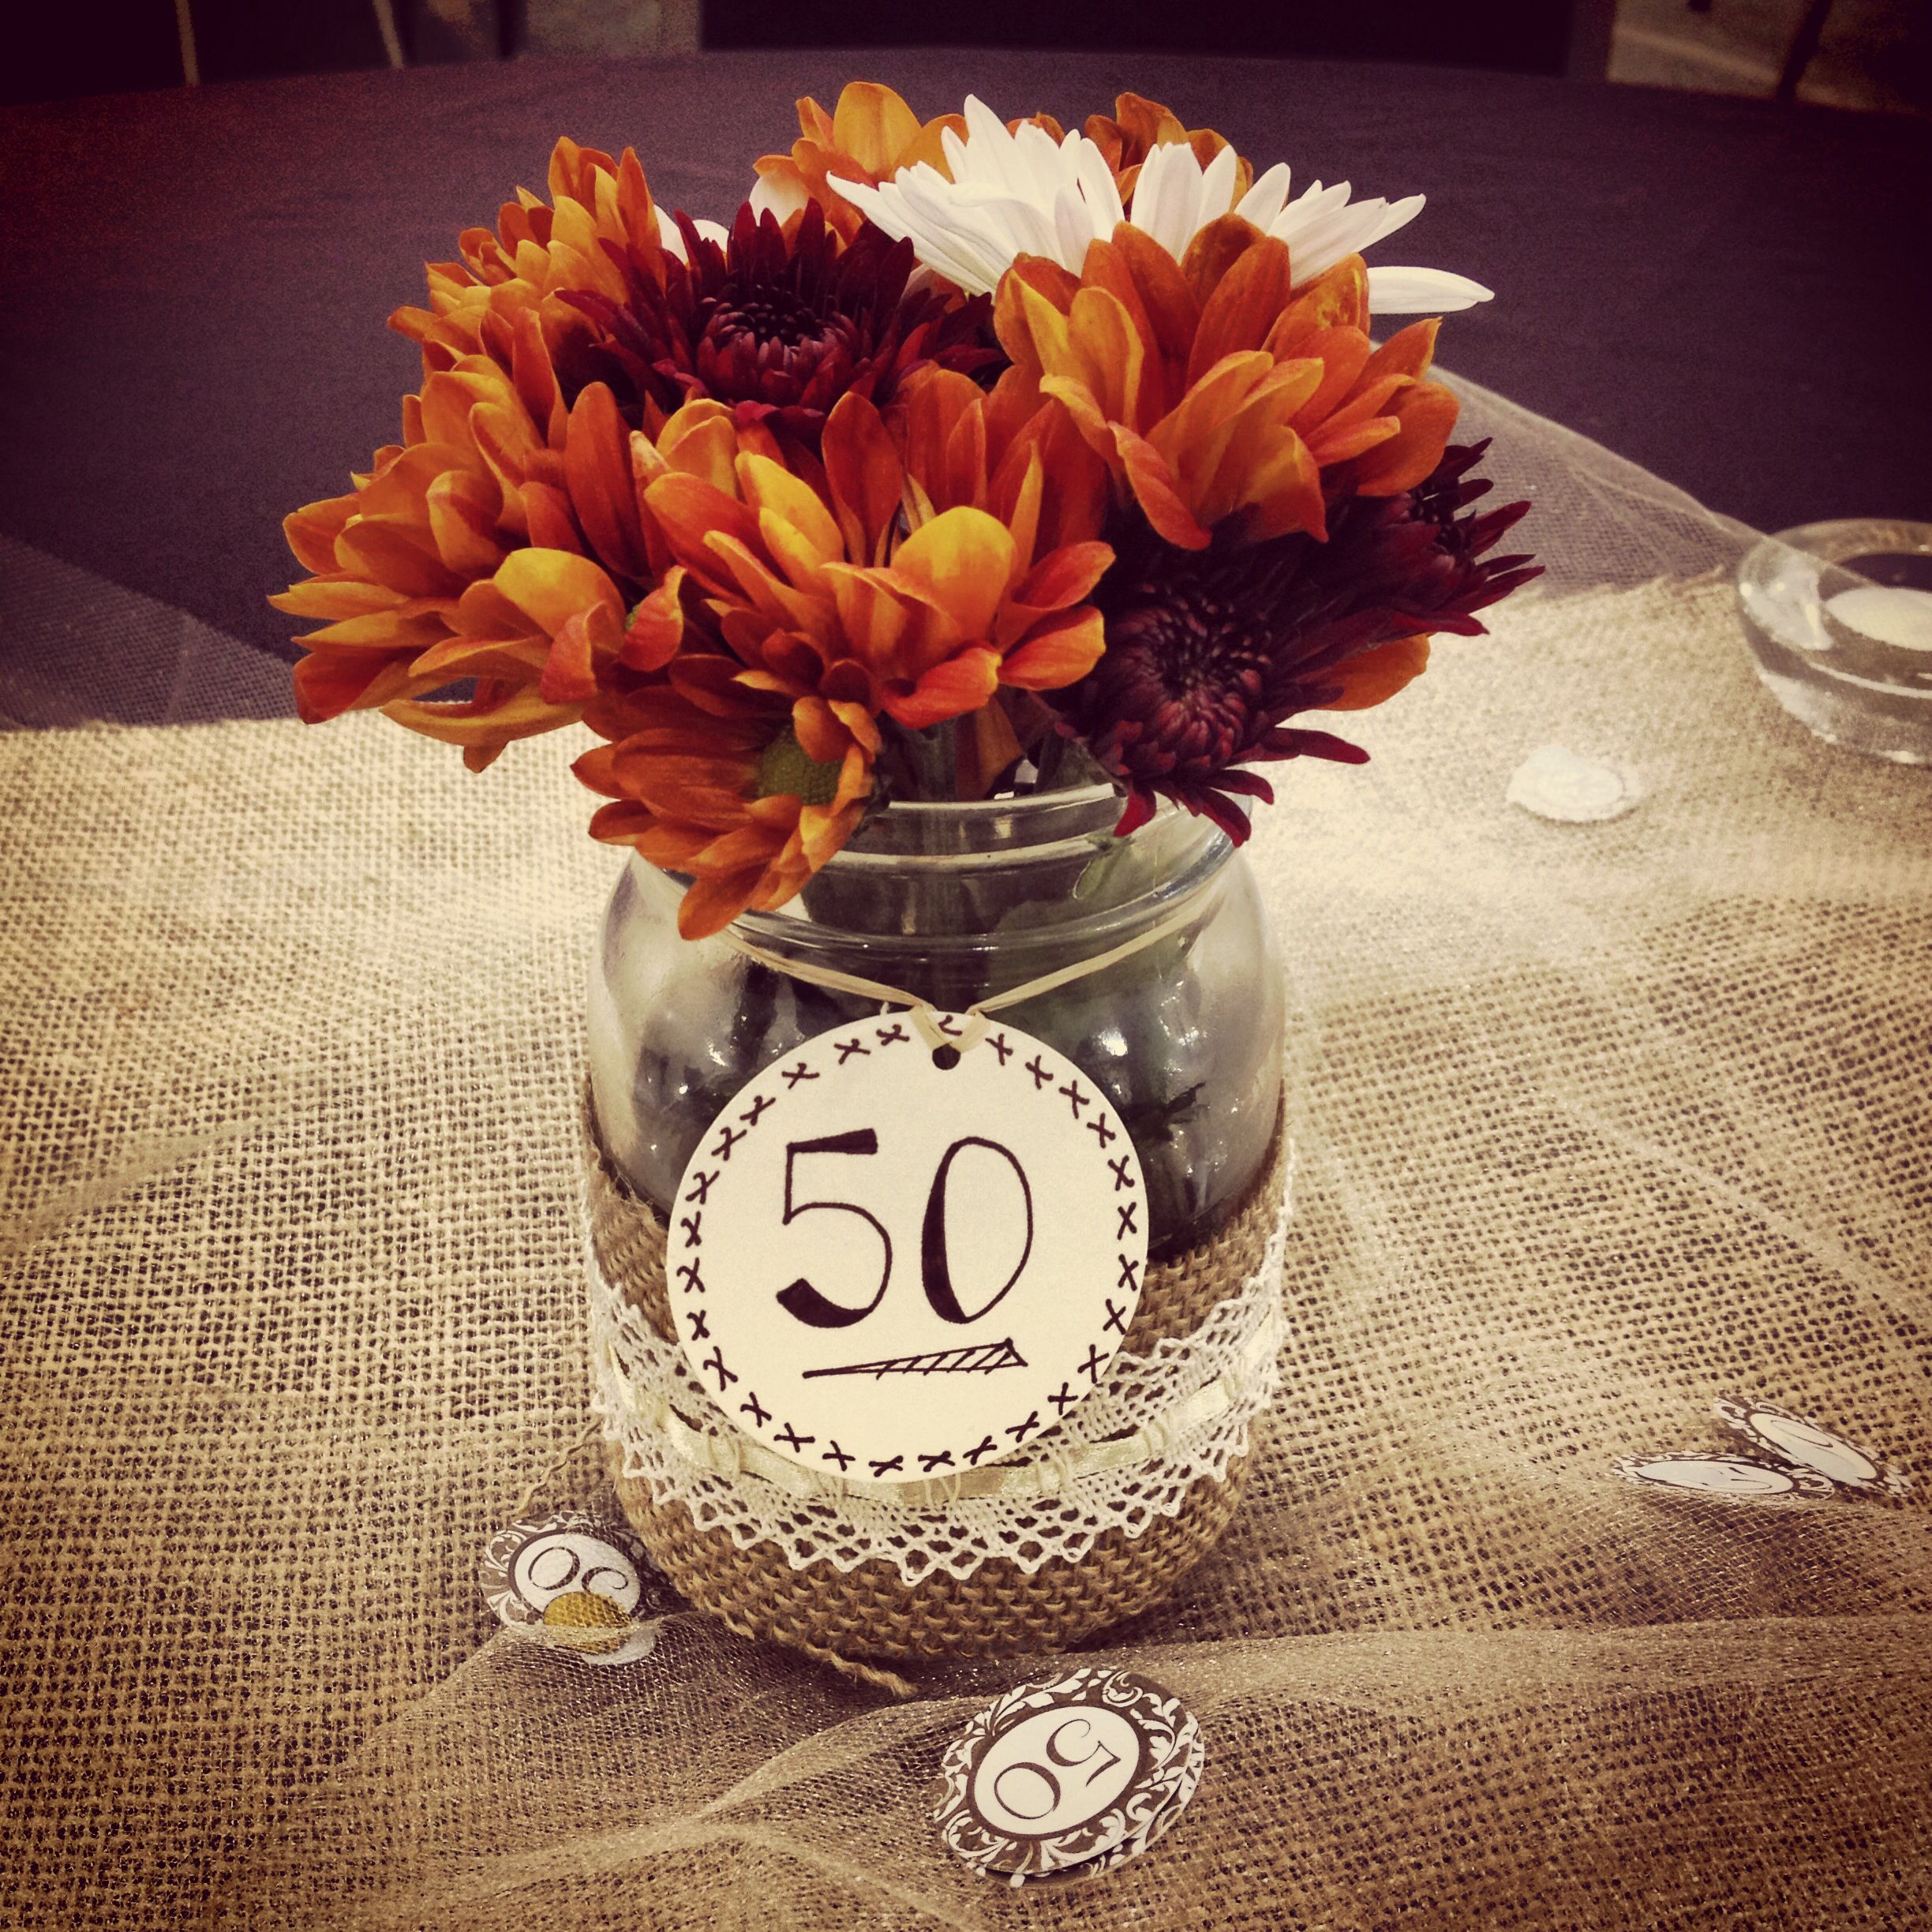 Decoration ideas for 40th wedding anniversary  th wedding anniversary party centerpiece  Weddings and Events